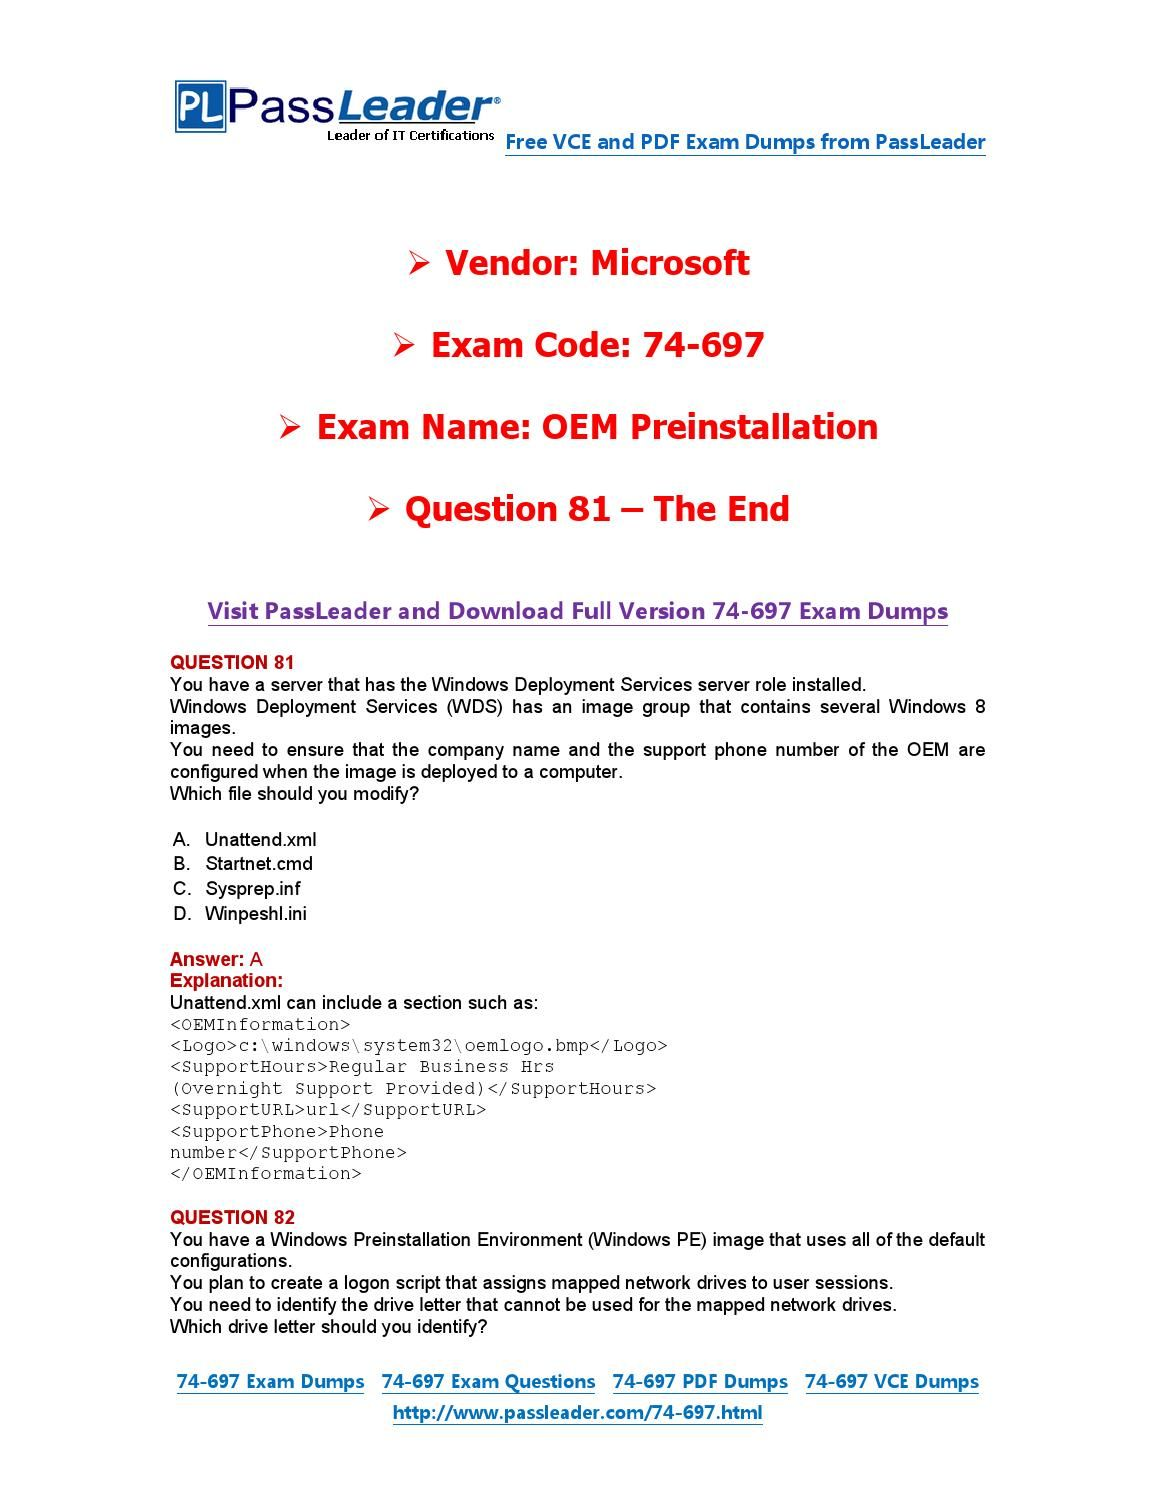 74-697 Exam Dumps with PDF and VCE Download (81-end)